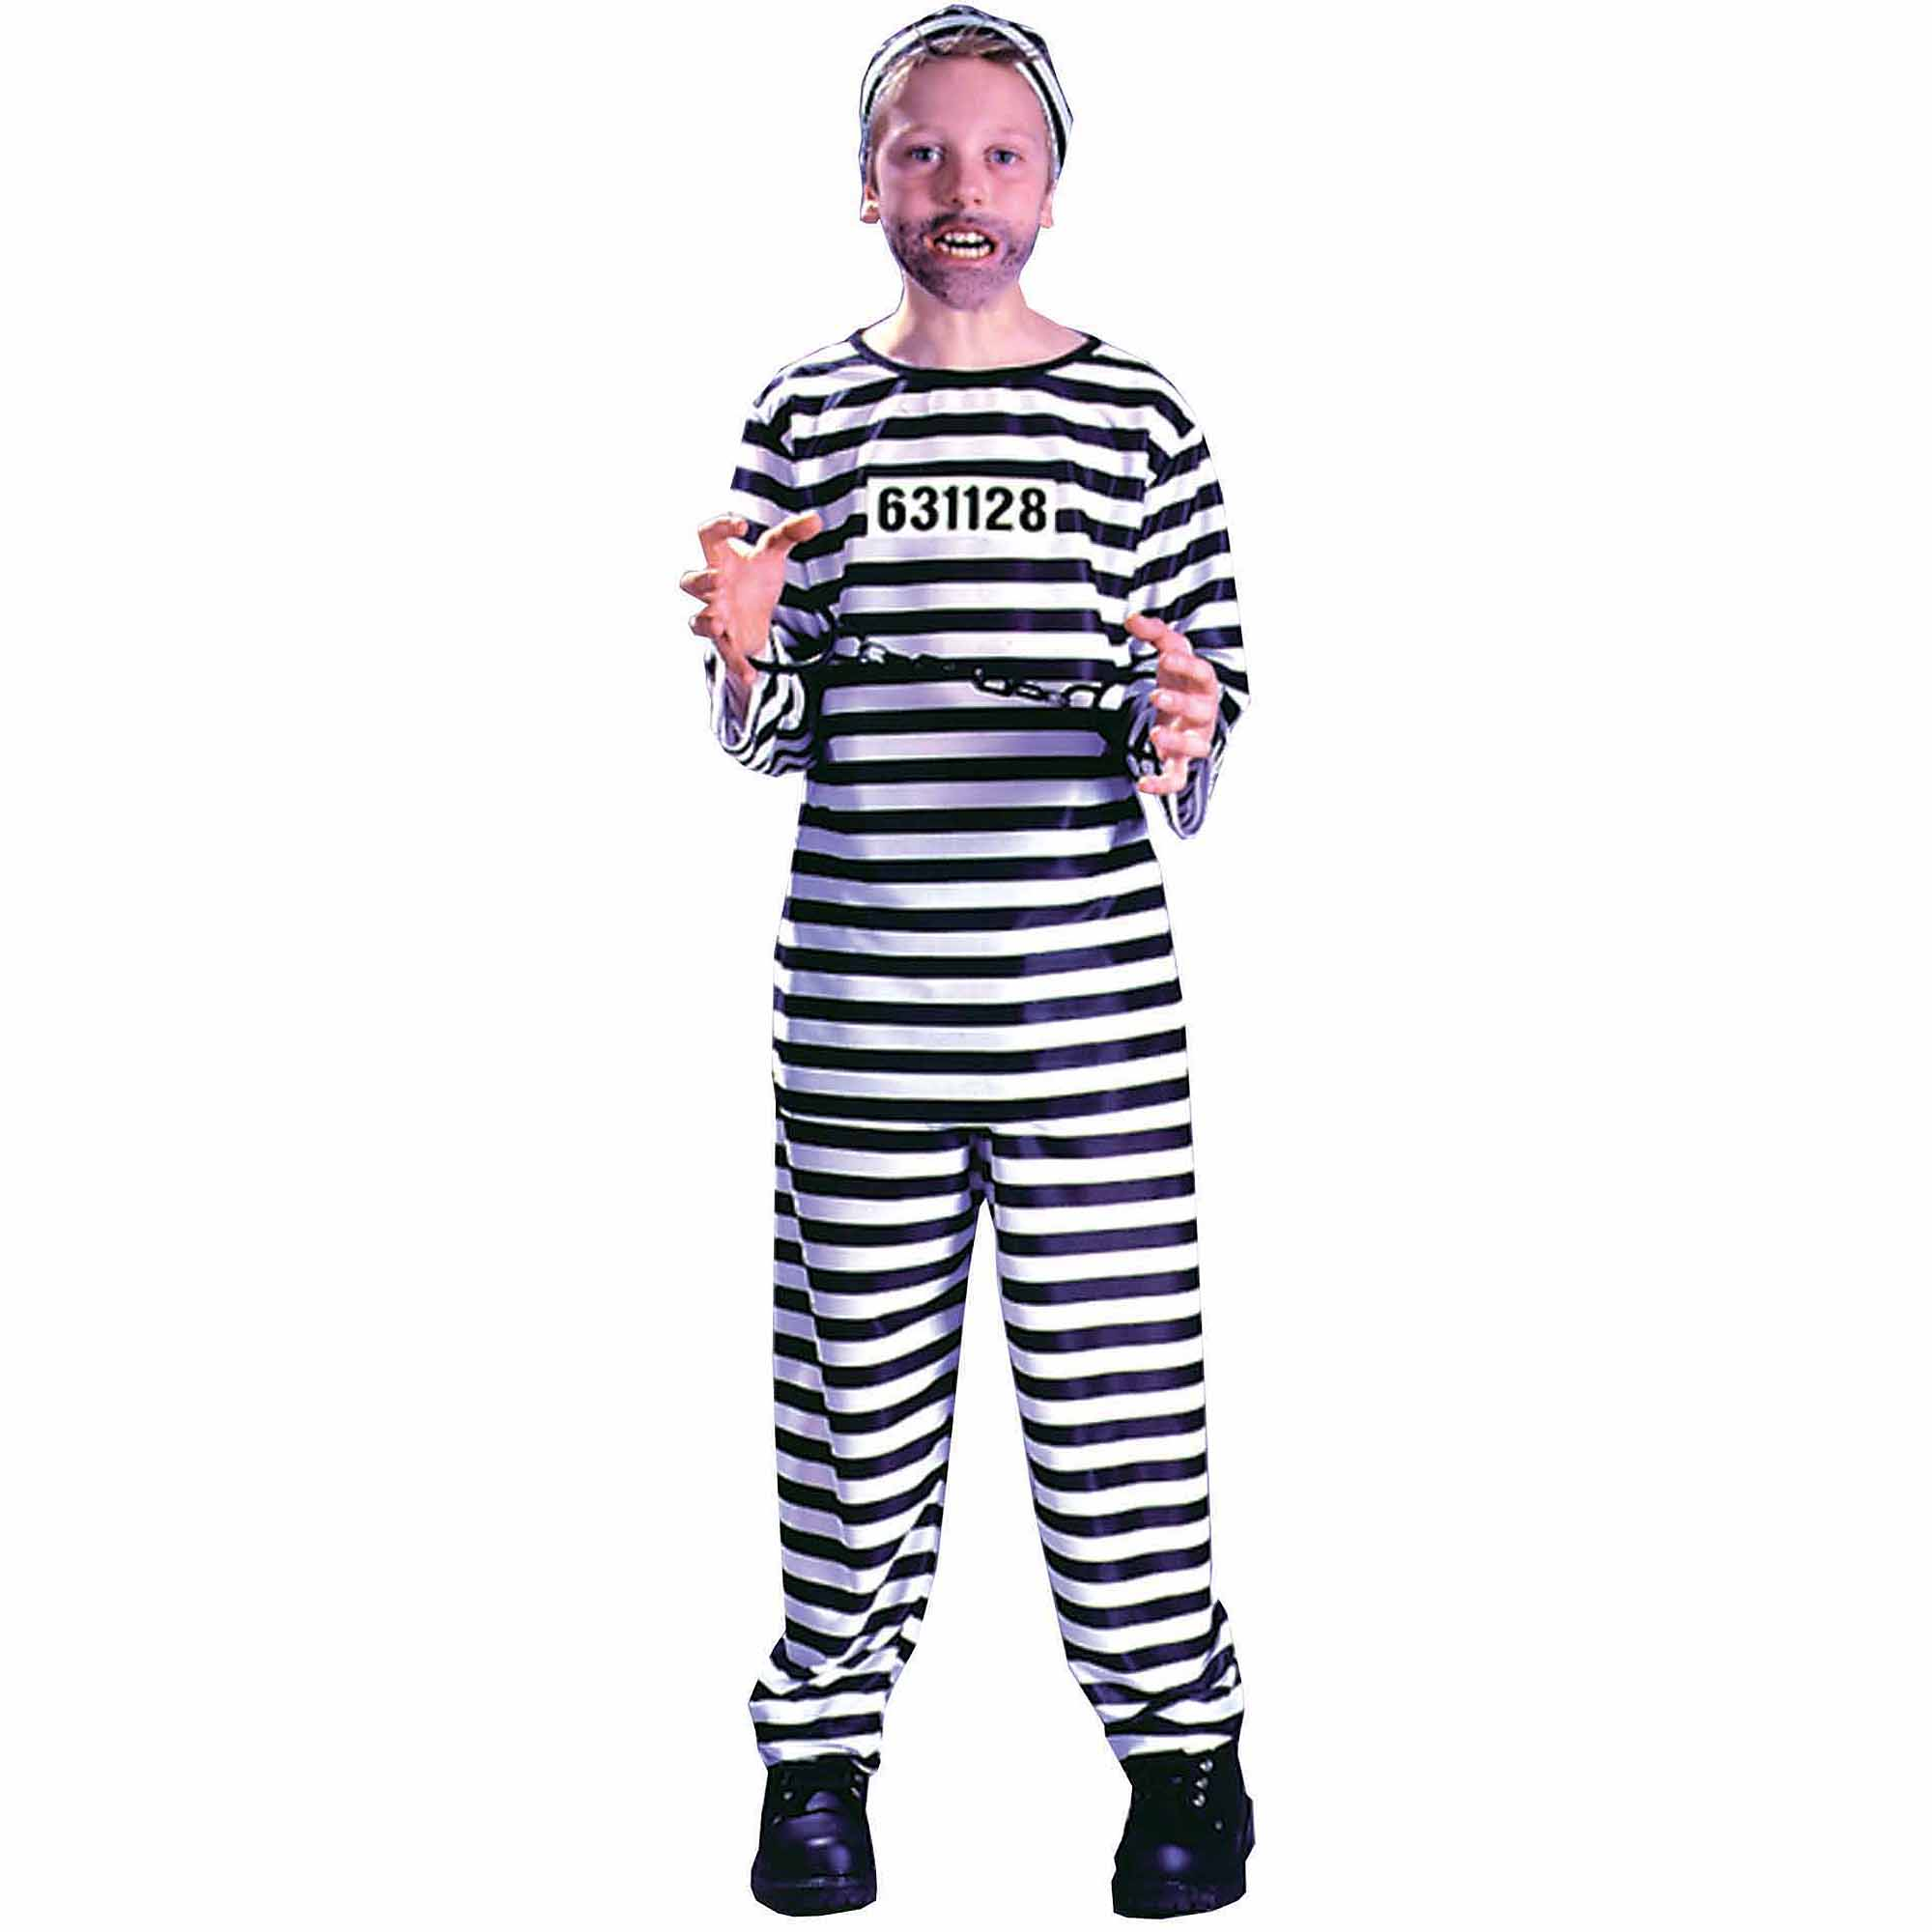 Jailbird Child Halloween Costume